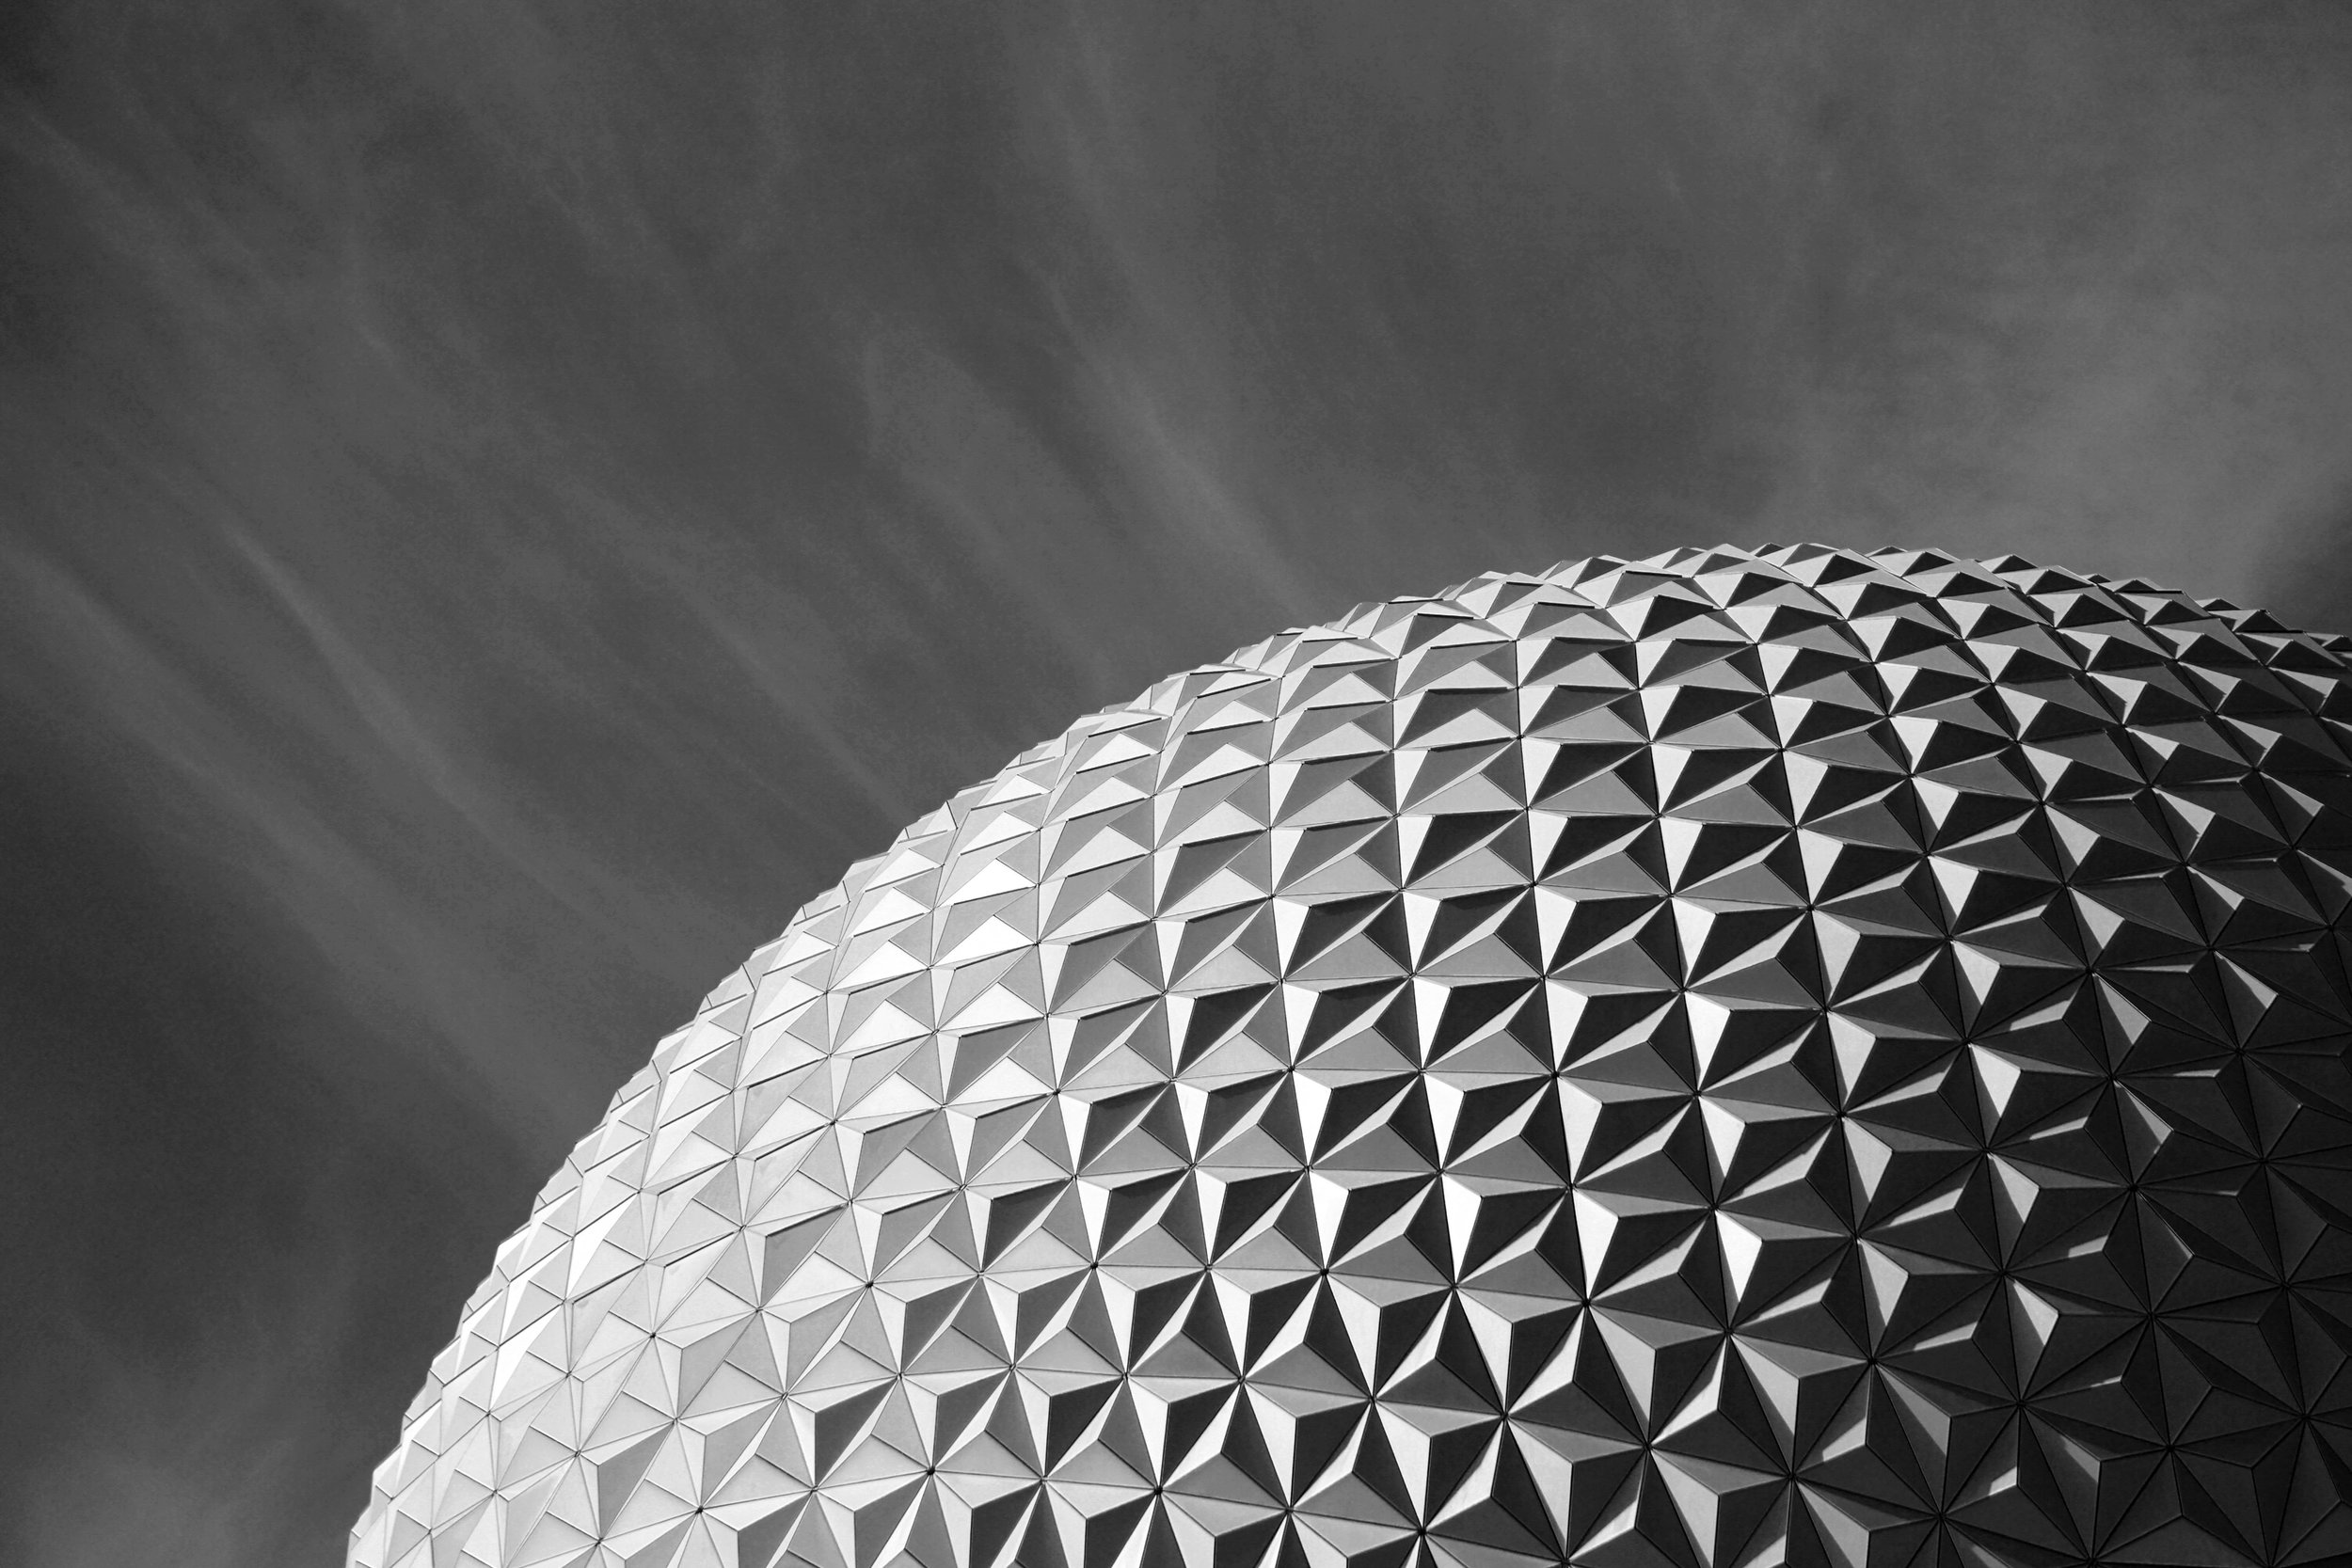 Black and White Epcot Photography